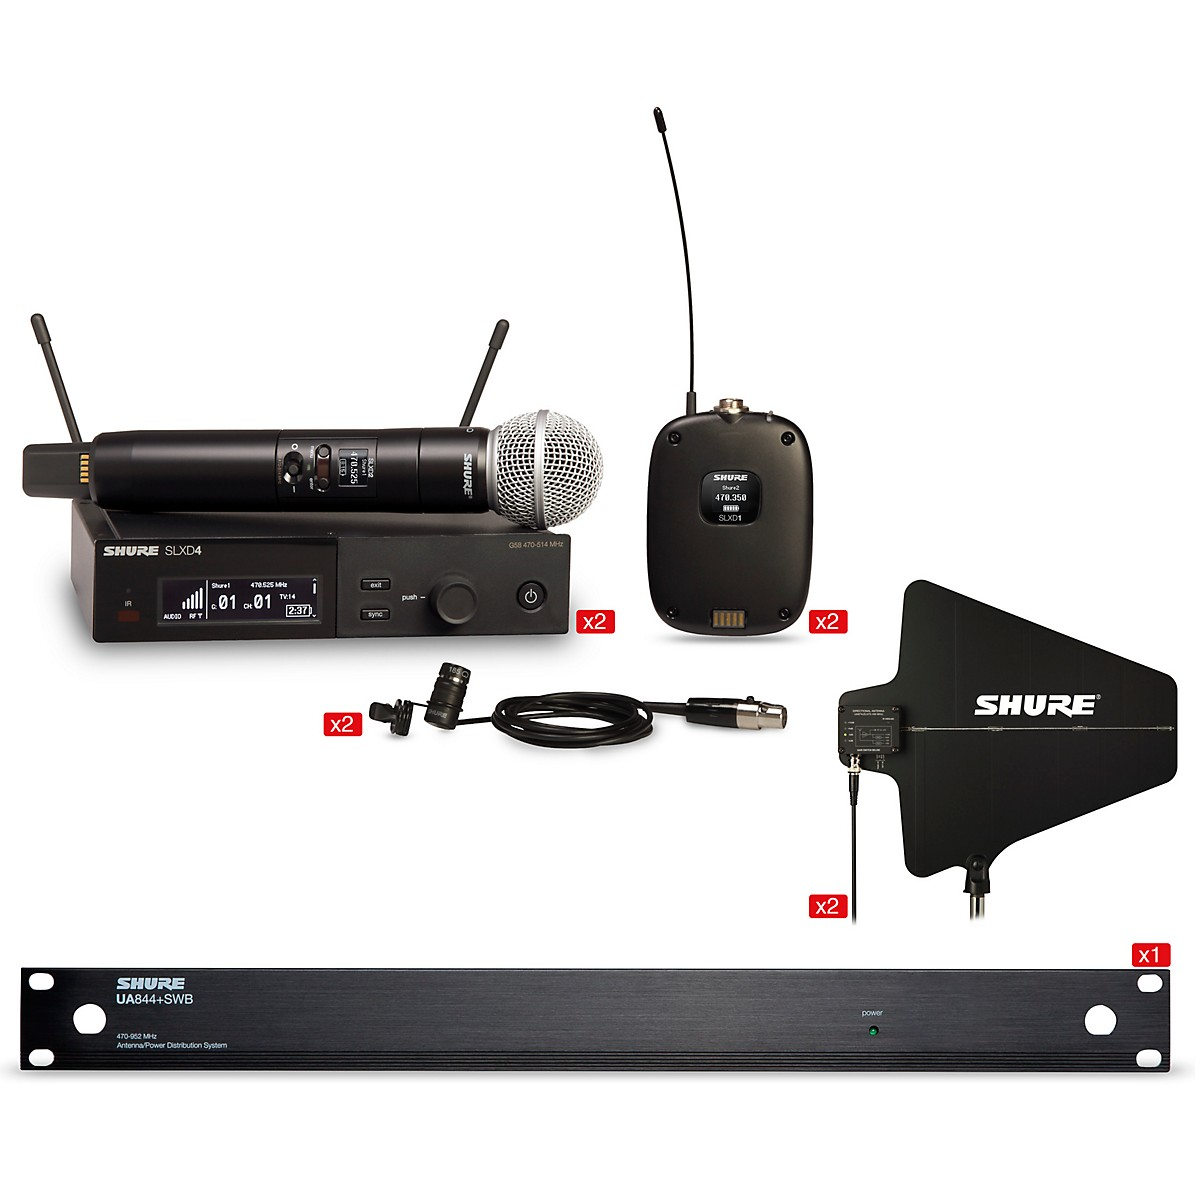 Shure SLXD Quad Combo Bundle With 2 Handheld and 2 Combo Systems With Antenna